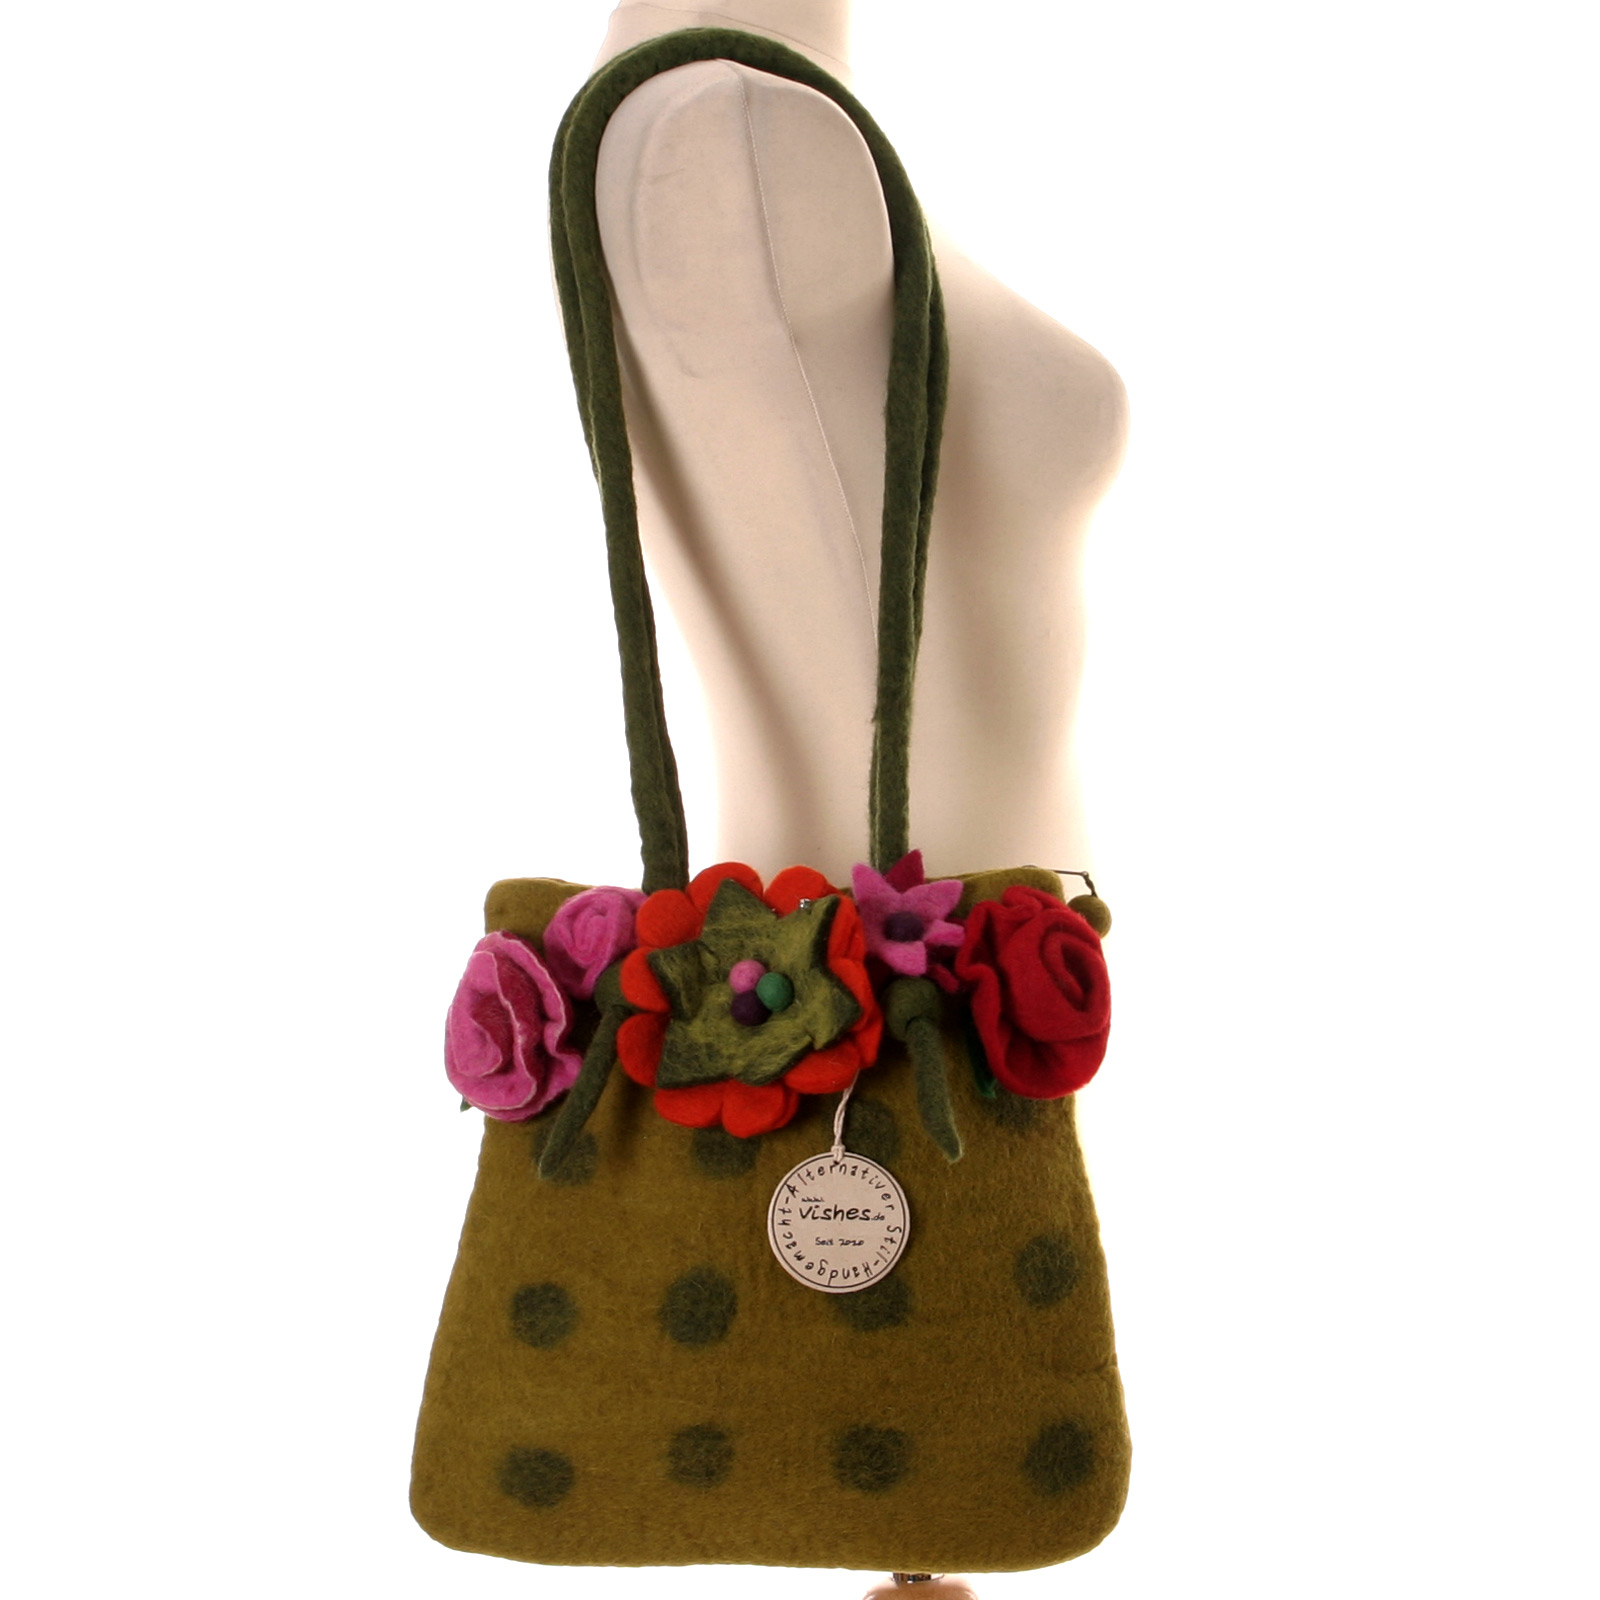 filz tasche hippie damen handtasche blume floral felt bag boho shopper filzen ebay. Black Bedroom Furniture Sets. Home Design Ideas